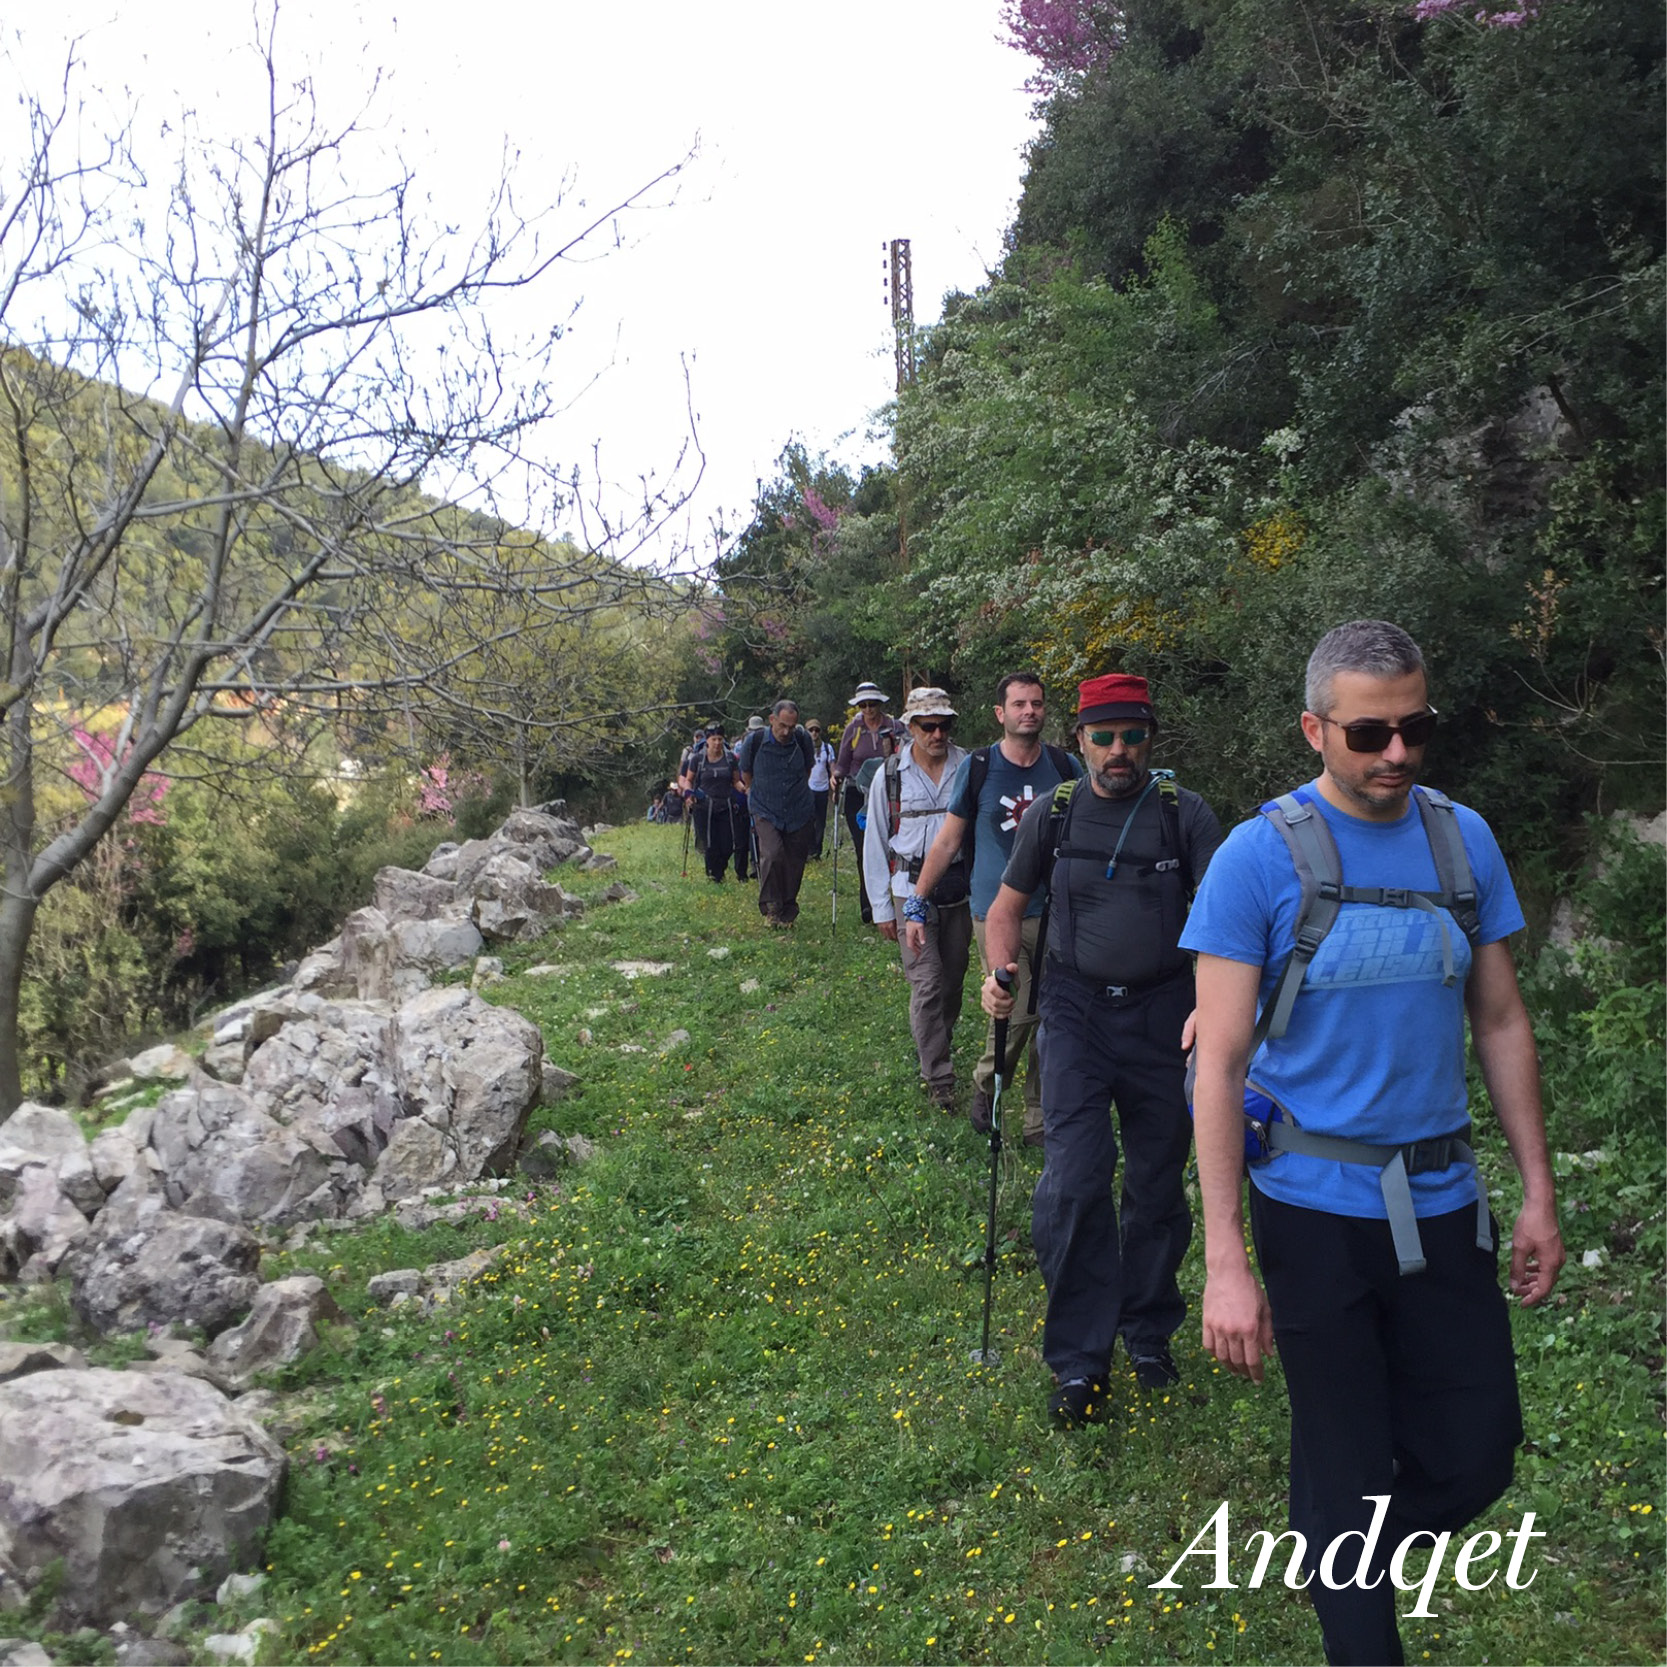 people hiking in Andqet